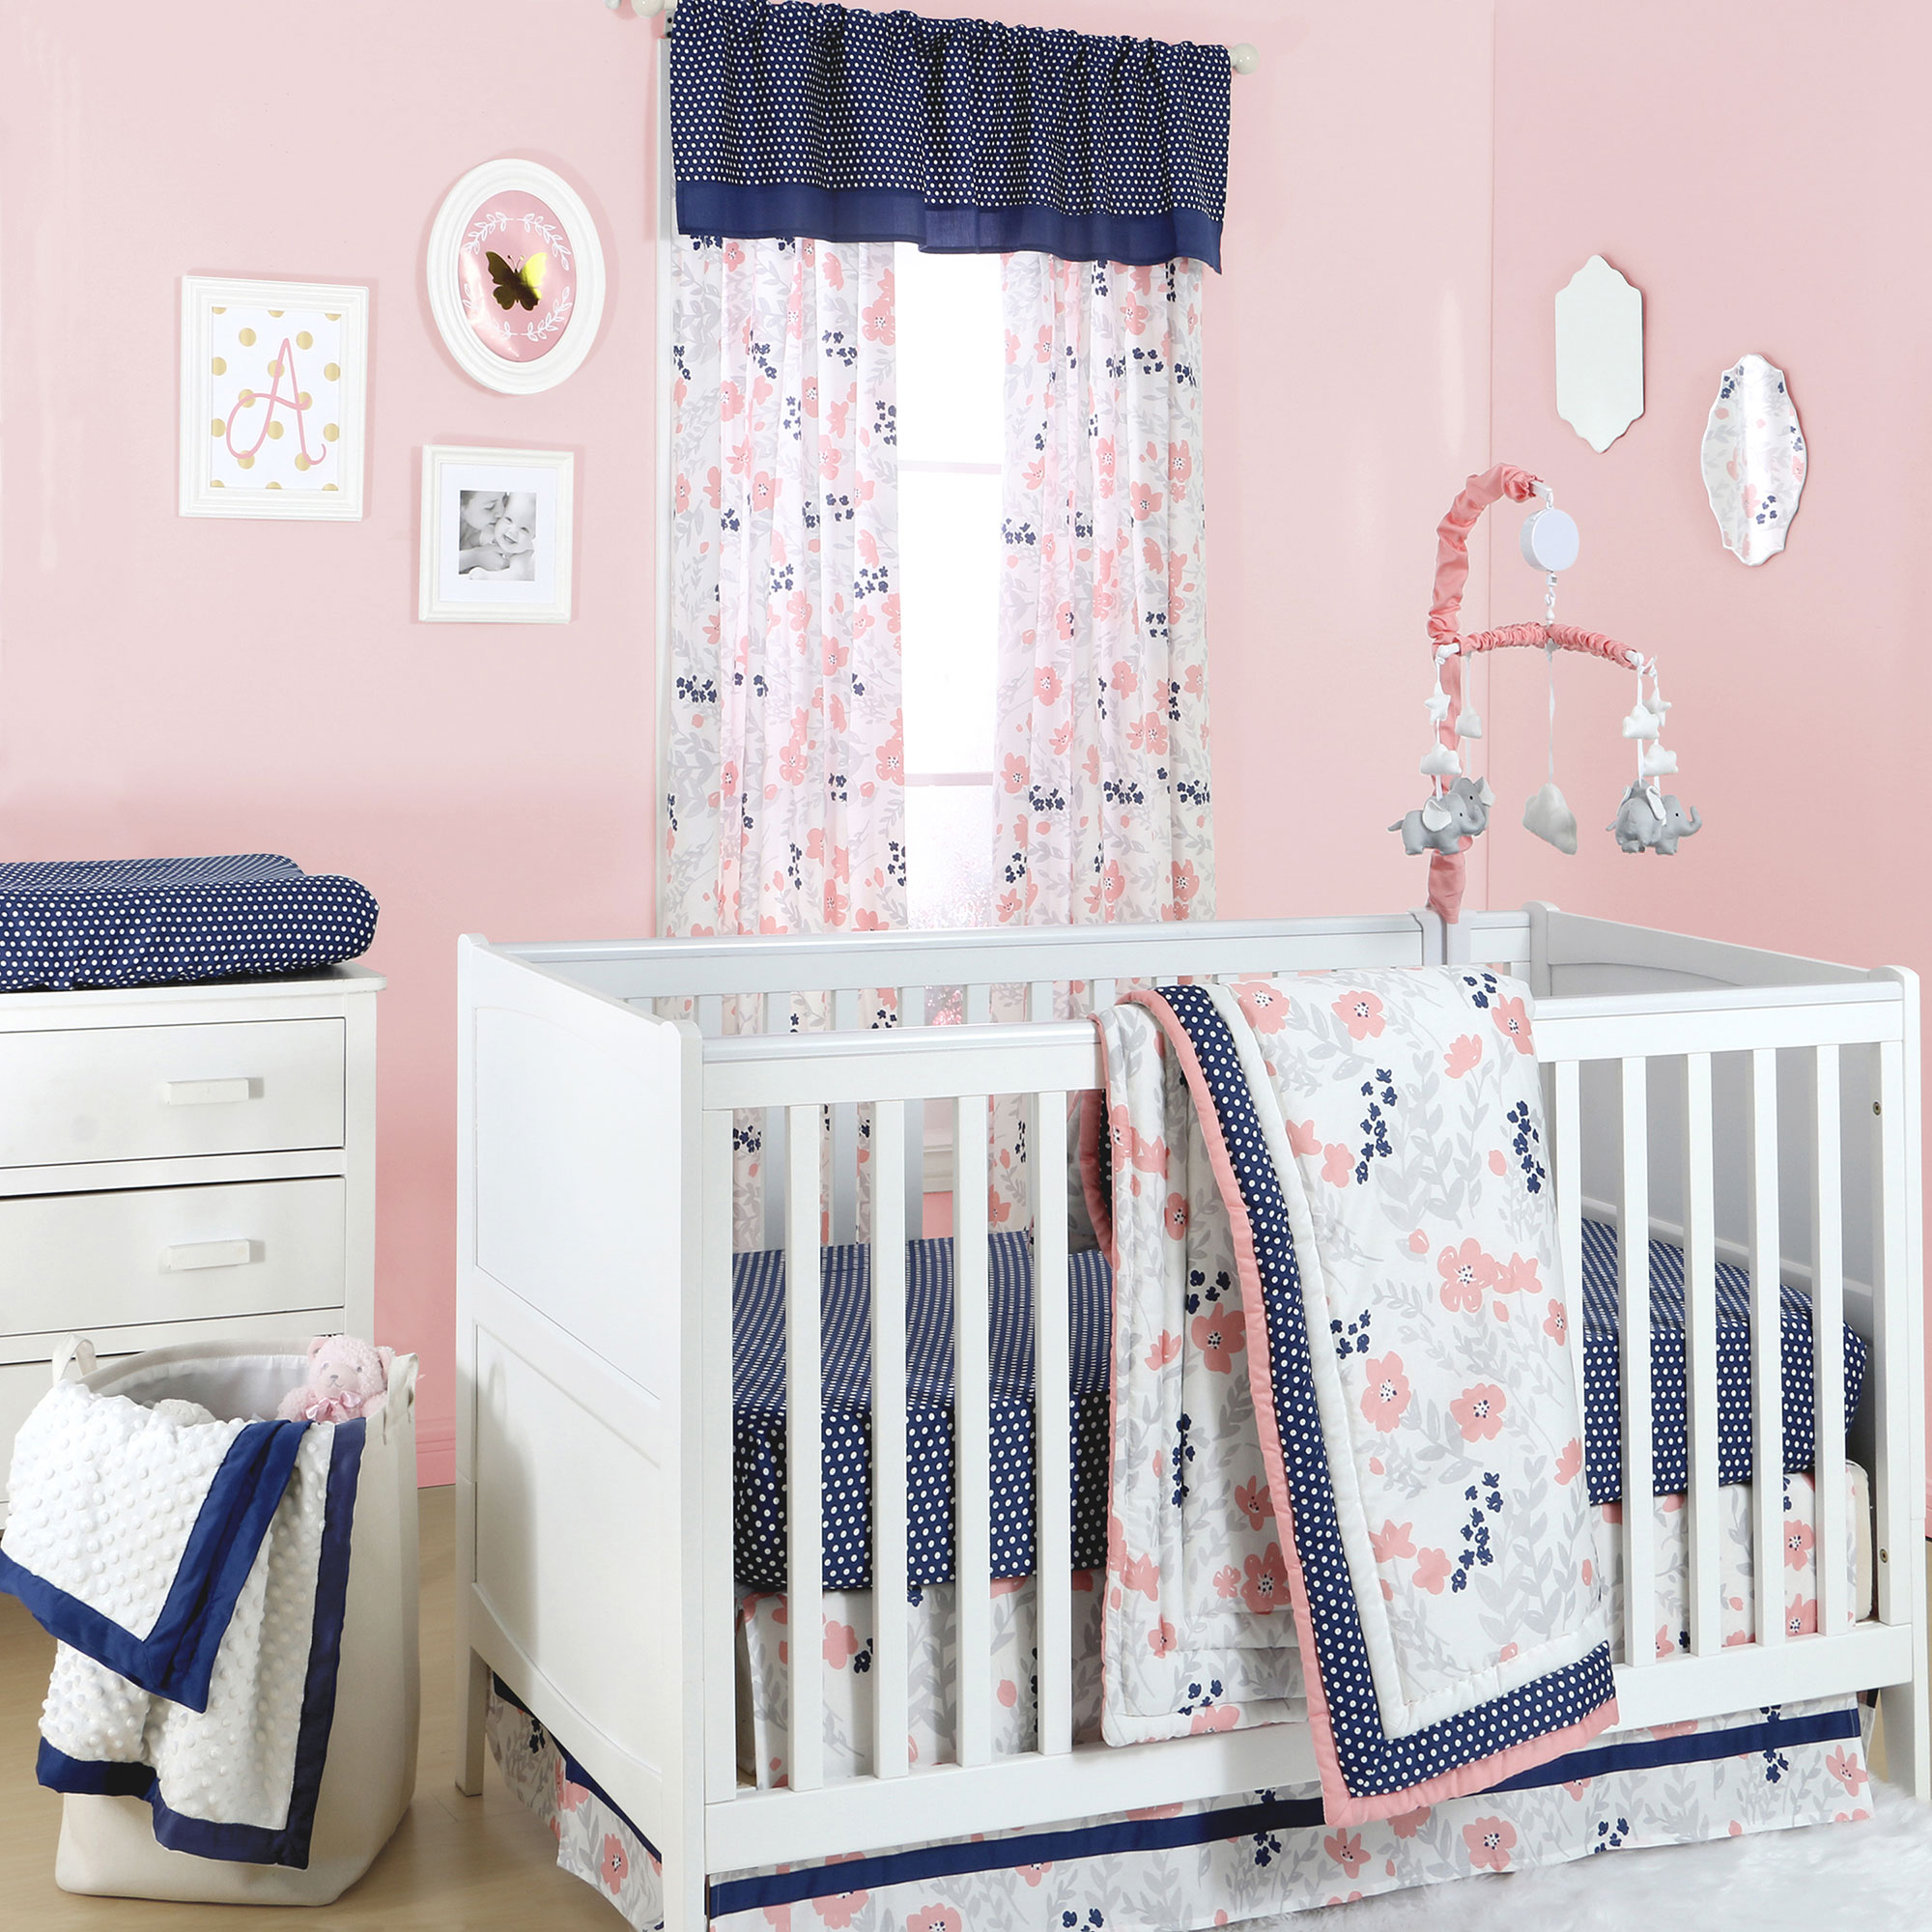 The Peanut Shell 4 Piece Baby Girl Crib Bedding Set - Navy Blue Dot with Coral Pink and Grey Floral - 100% Cotton Quilt, Dust Ruffle, Fitted Sheet, and Mobile